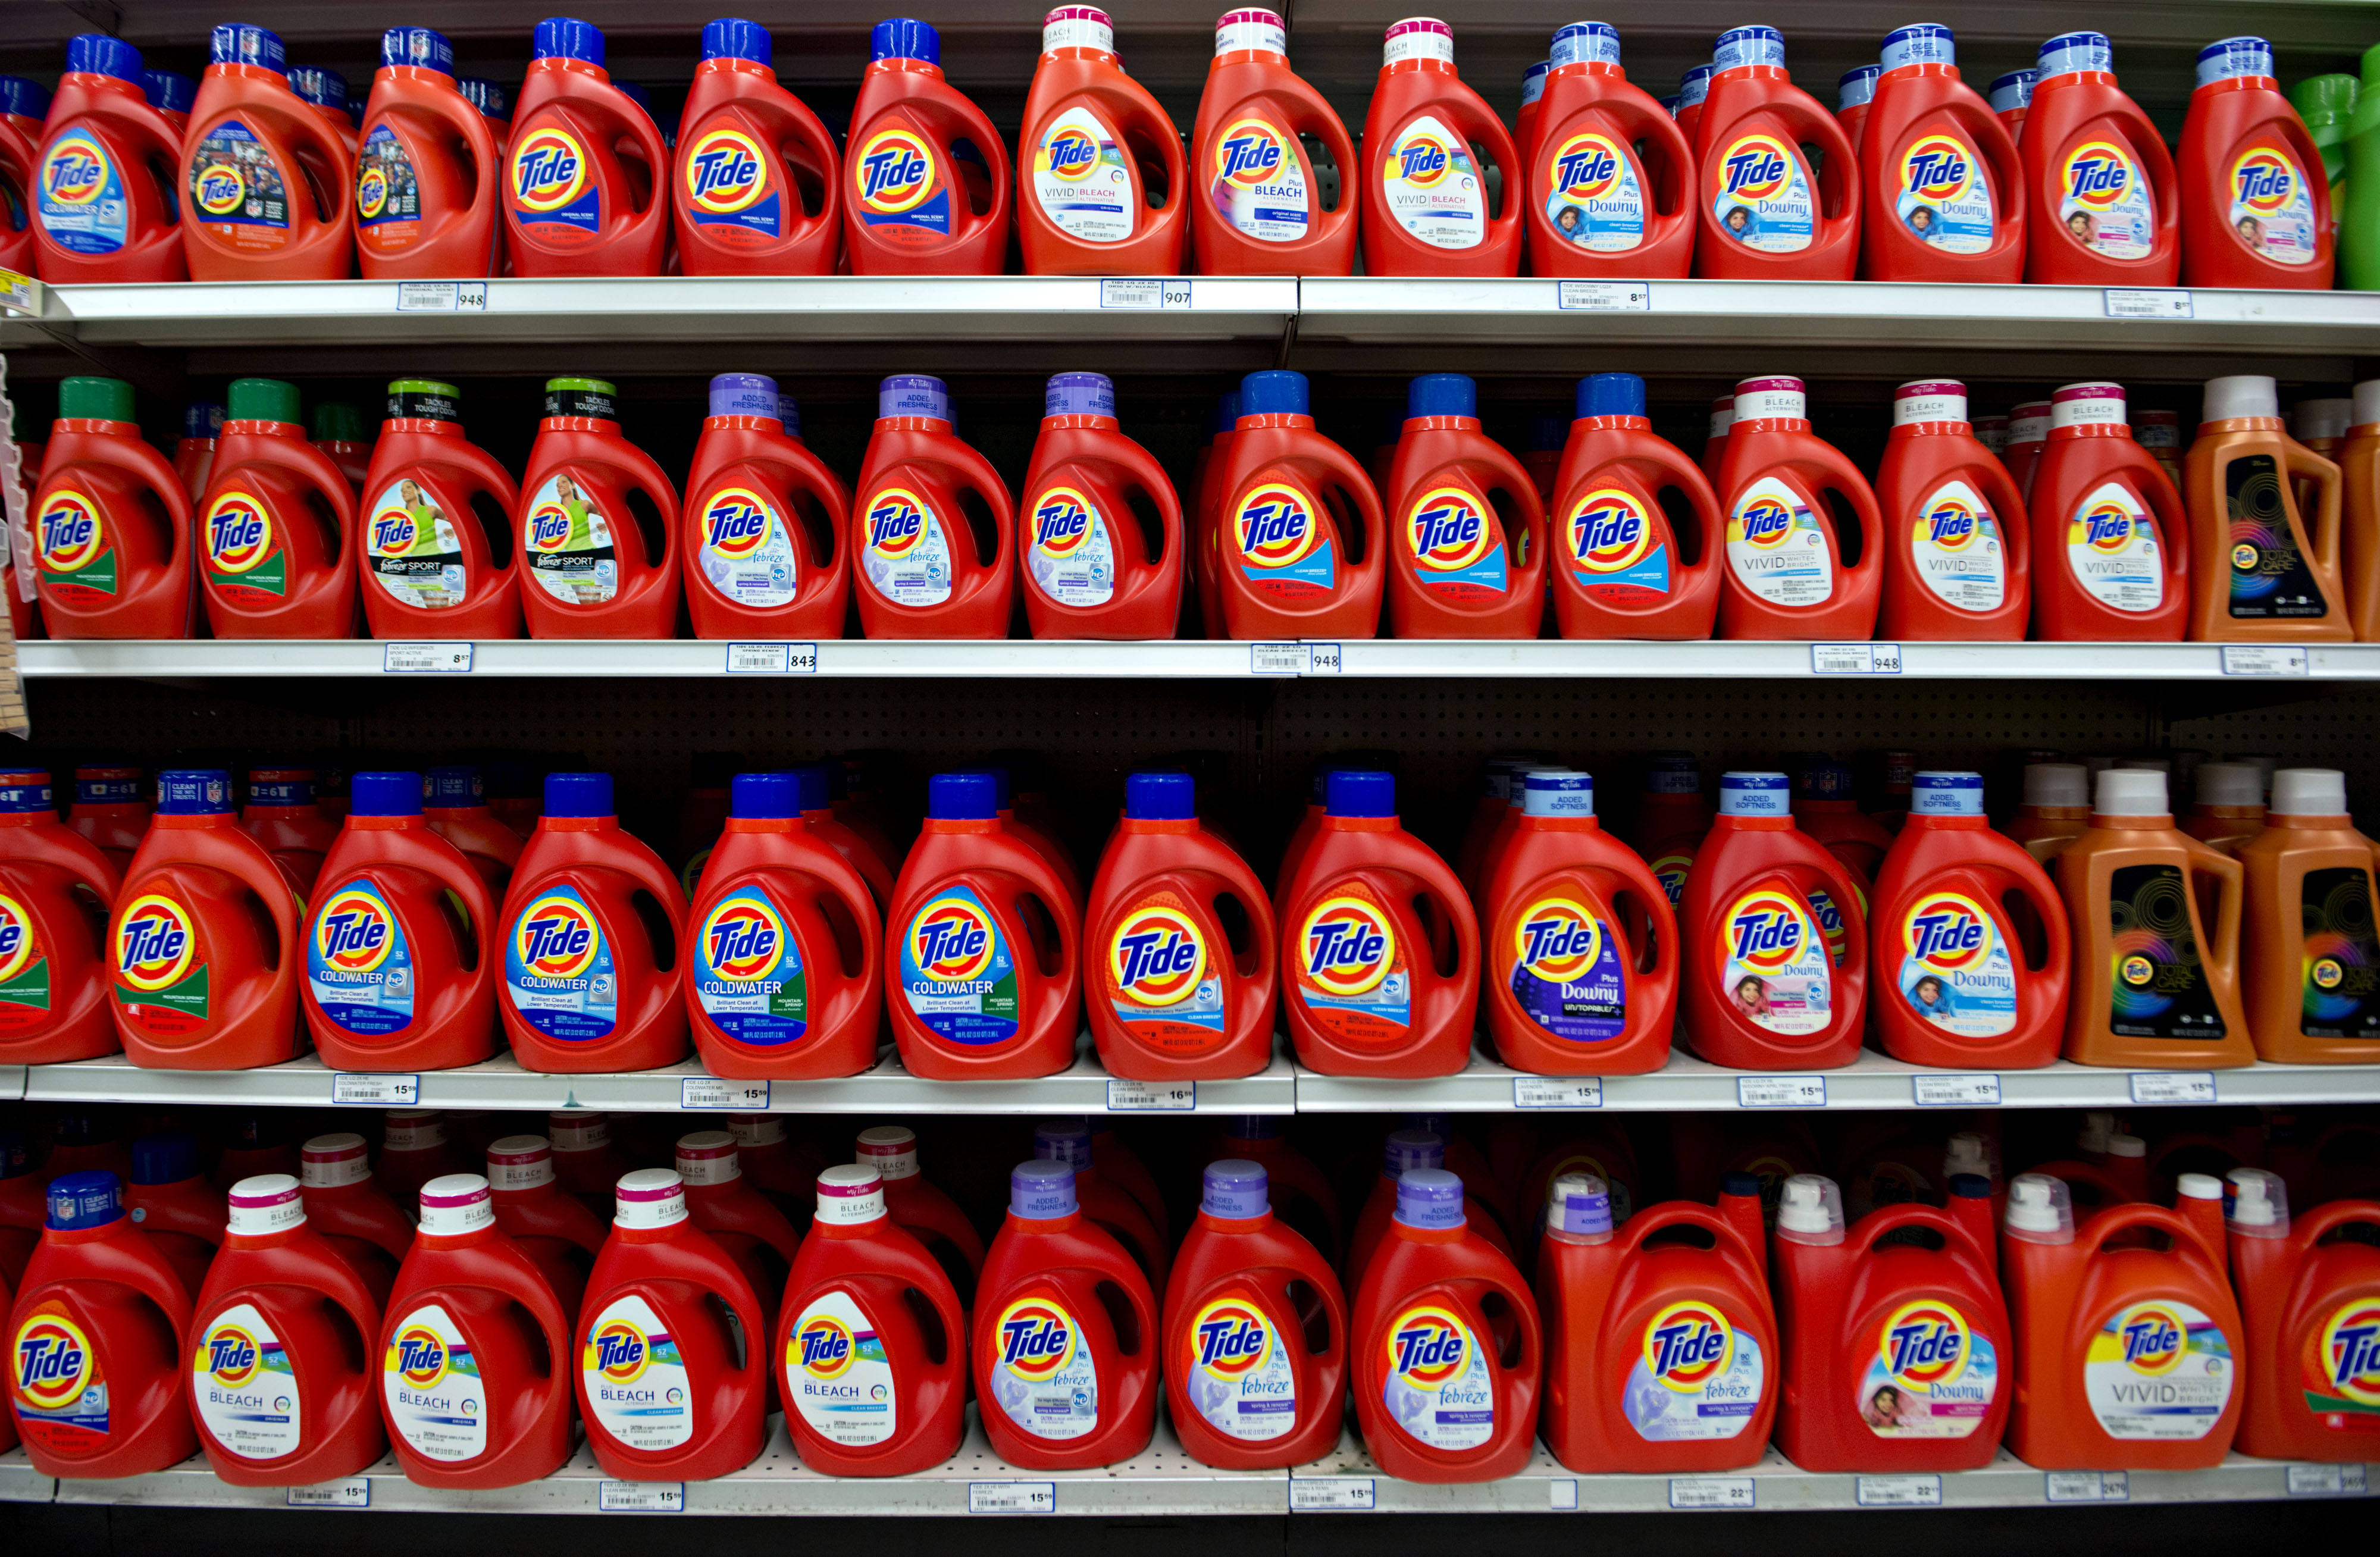 Online sales of laundry detergent are dominated by Tide.